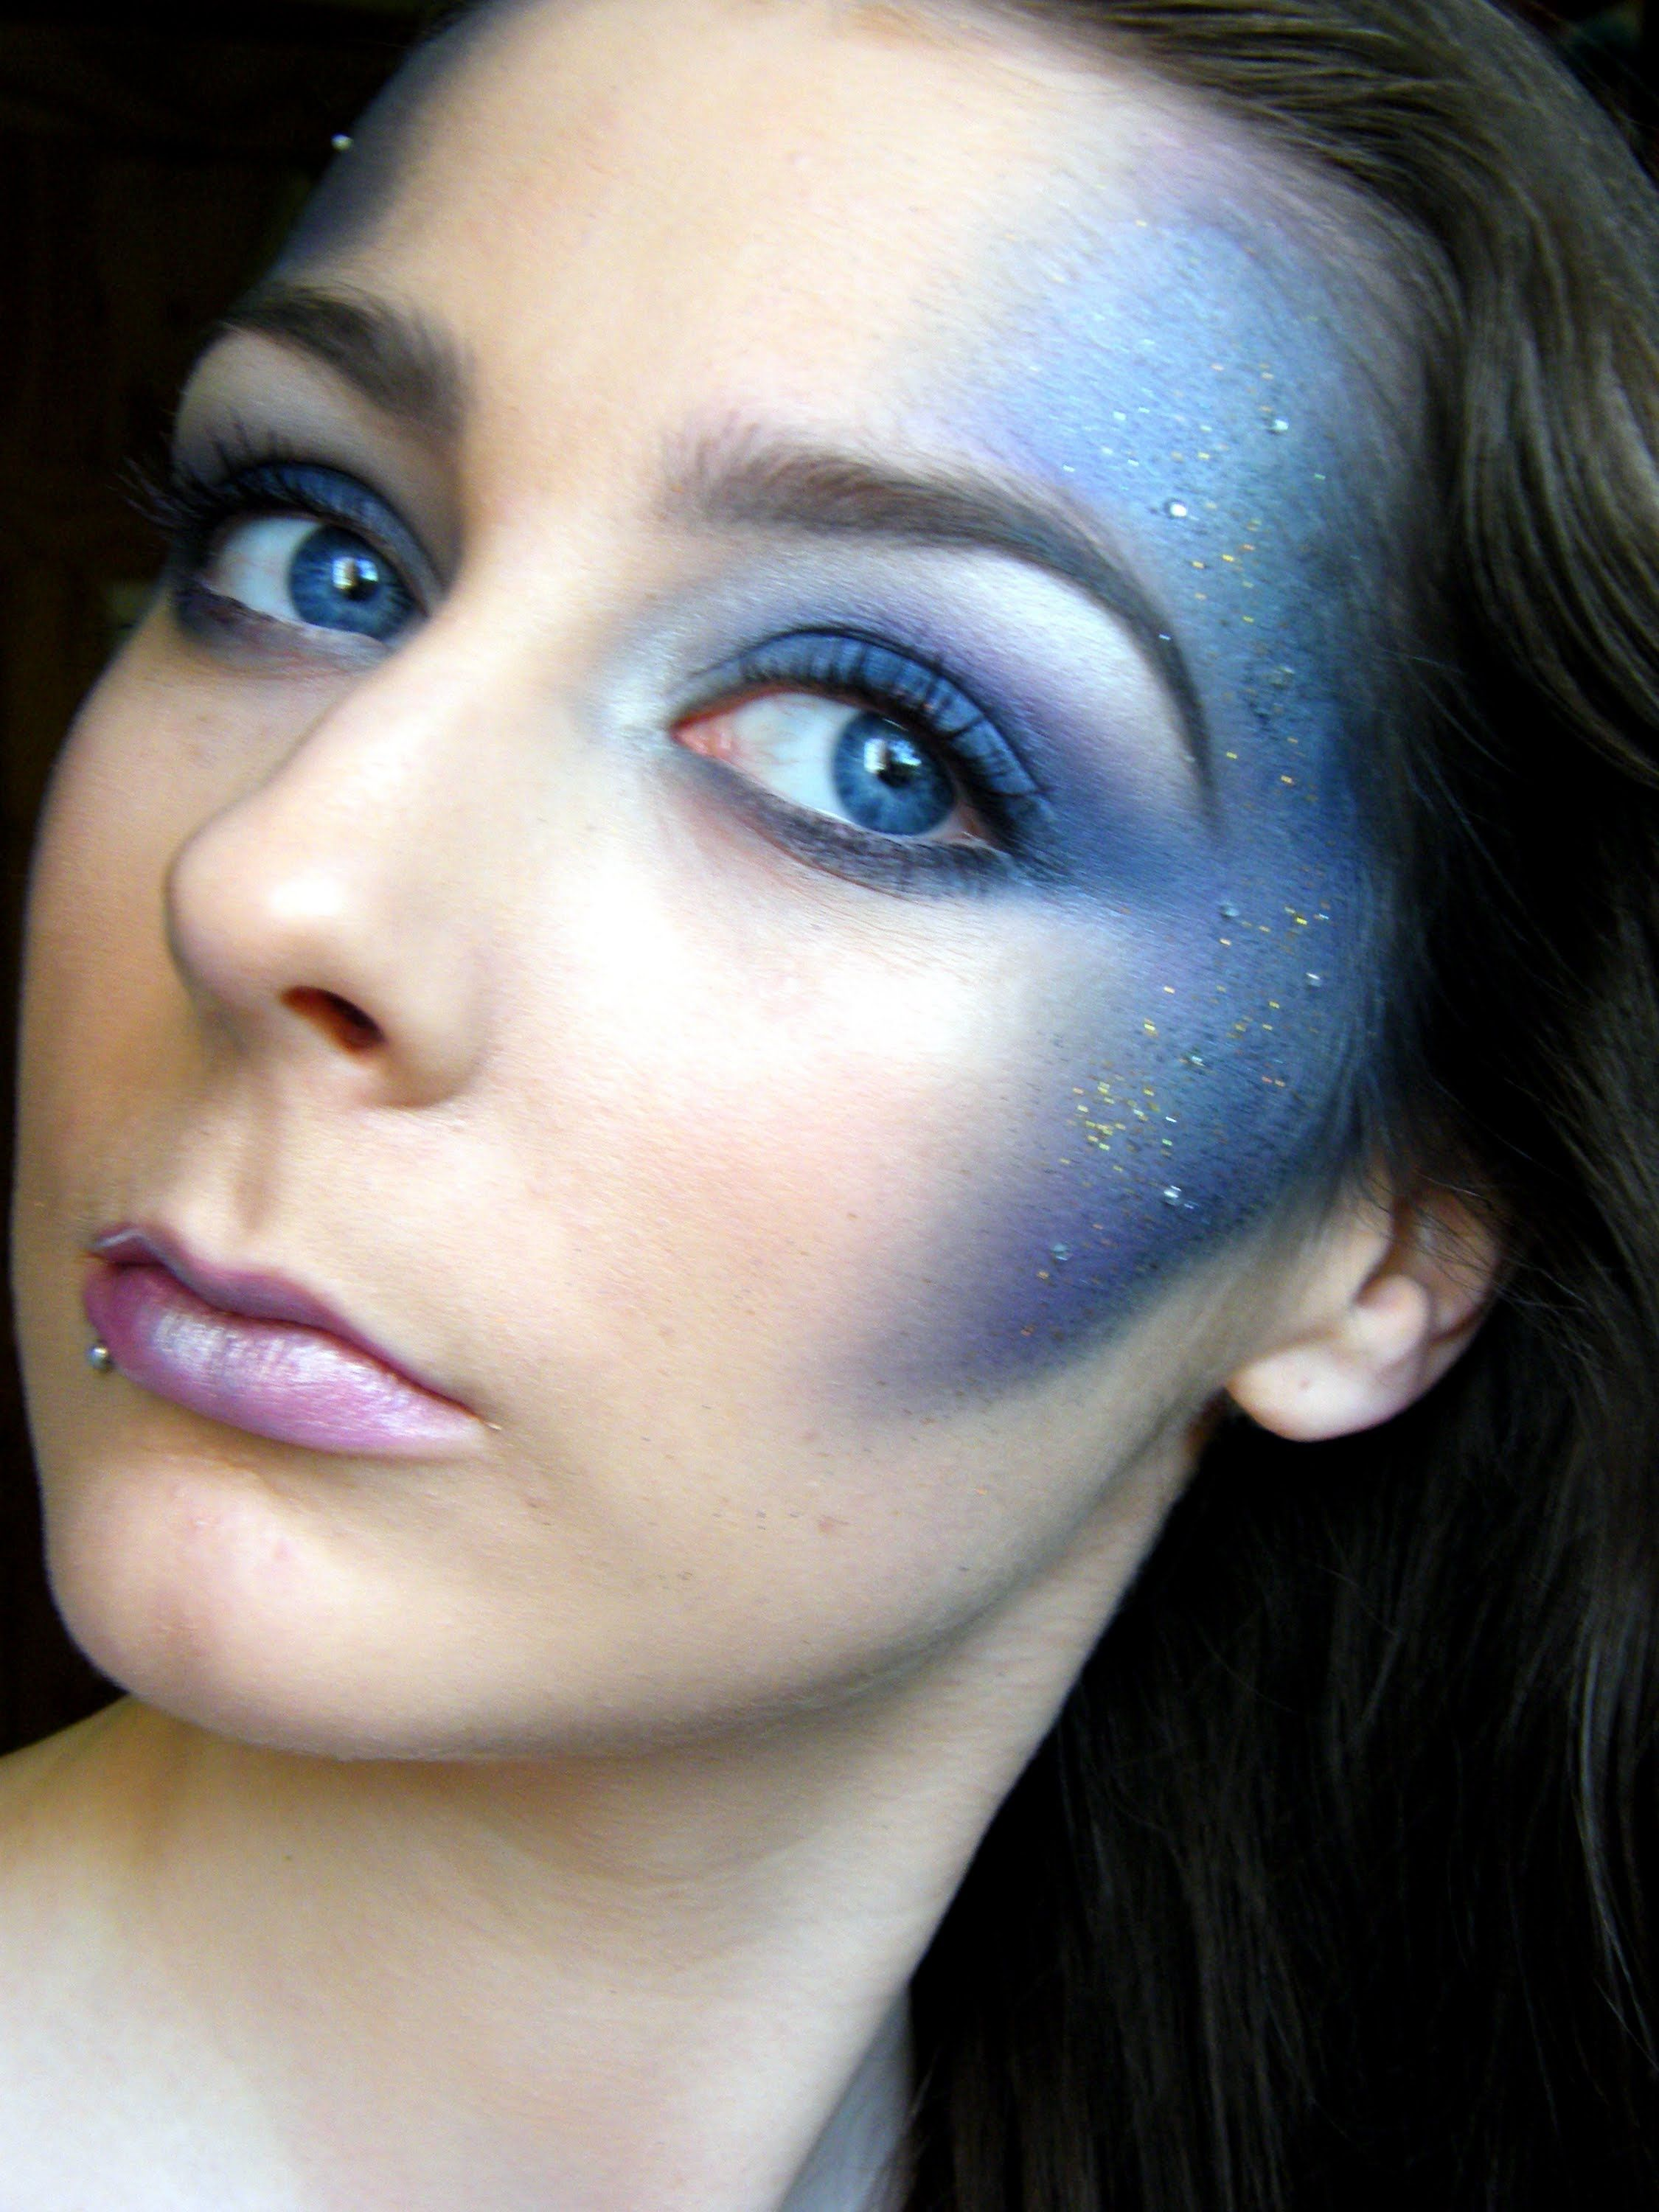 Youtube Makeup Tutorials Popular: Galaxy Inspired Makeup Tutorial, Via YouTube.